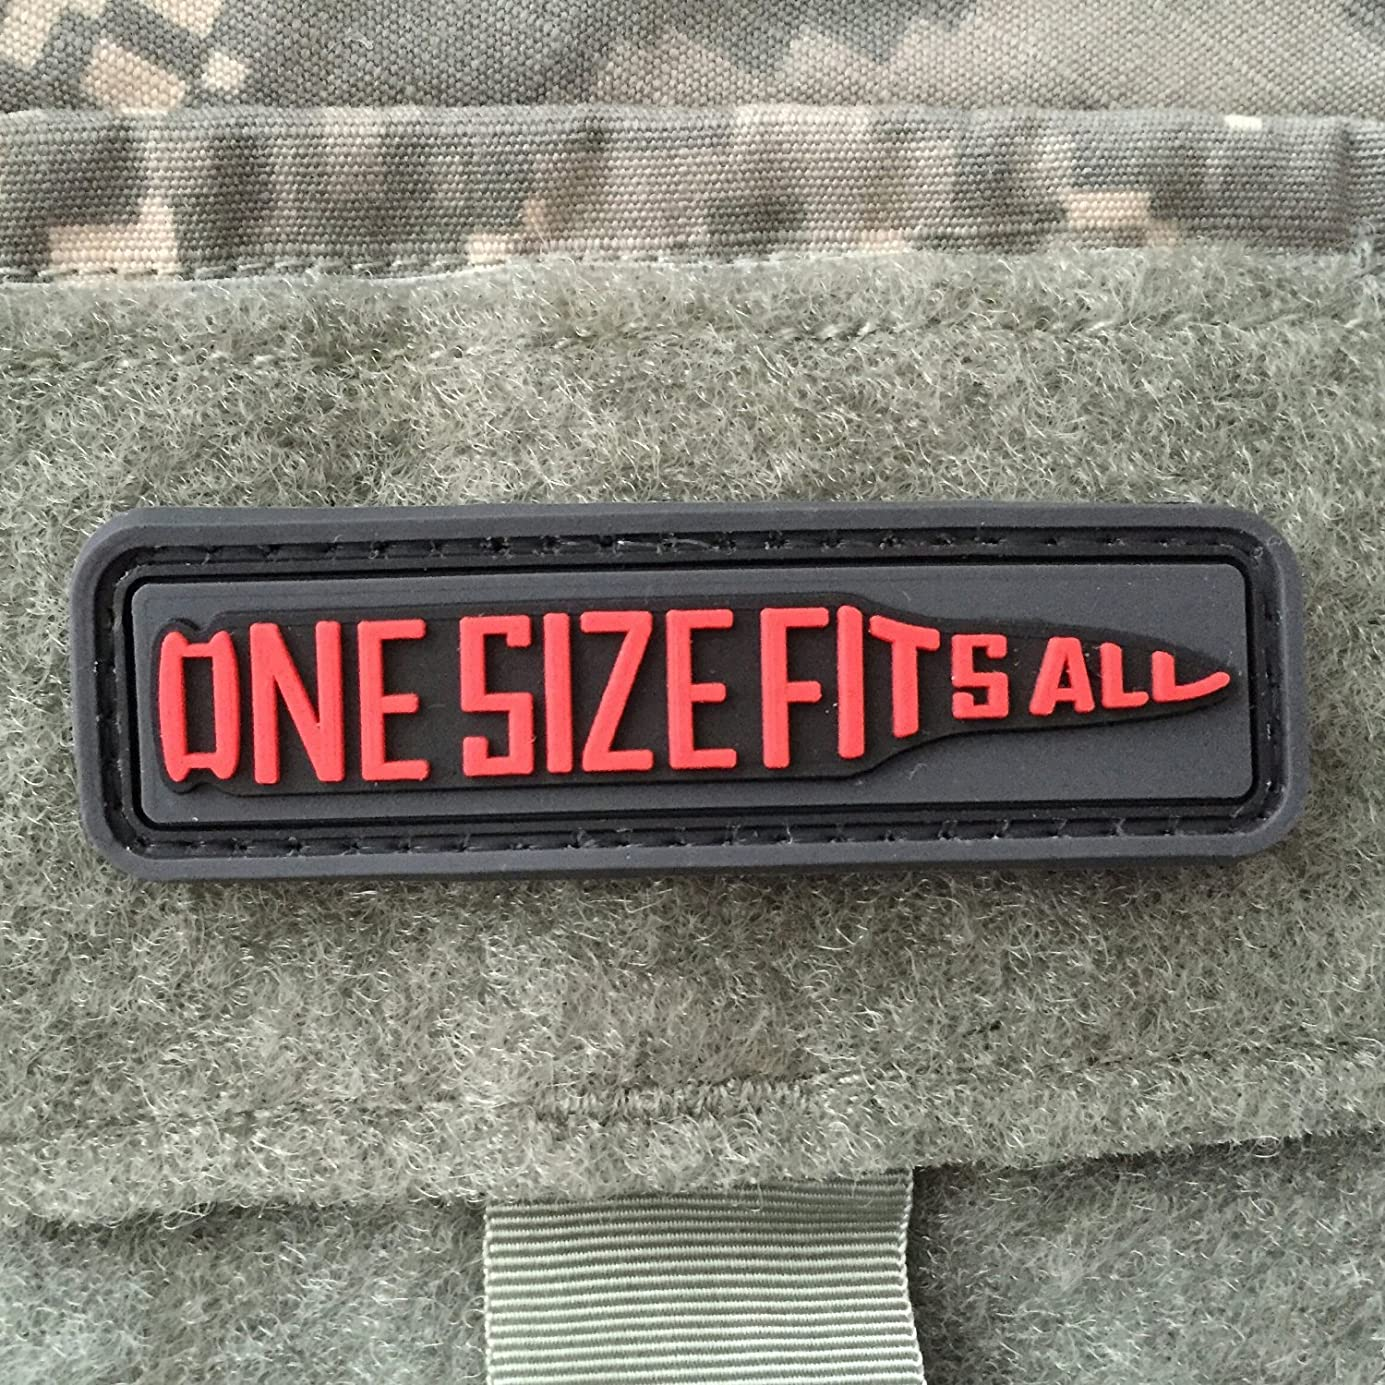 NEO Tactical Gear One Size Fits All Morale Patch - PVC Morale Patch, Velcro Morale Patch hwlbga4568